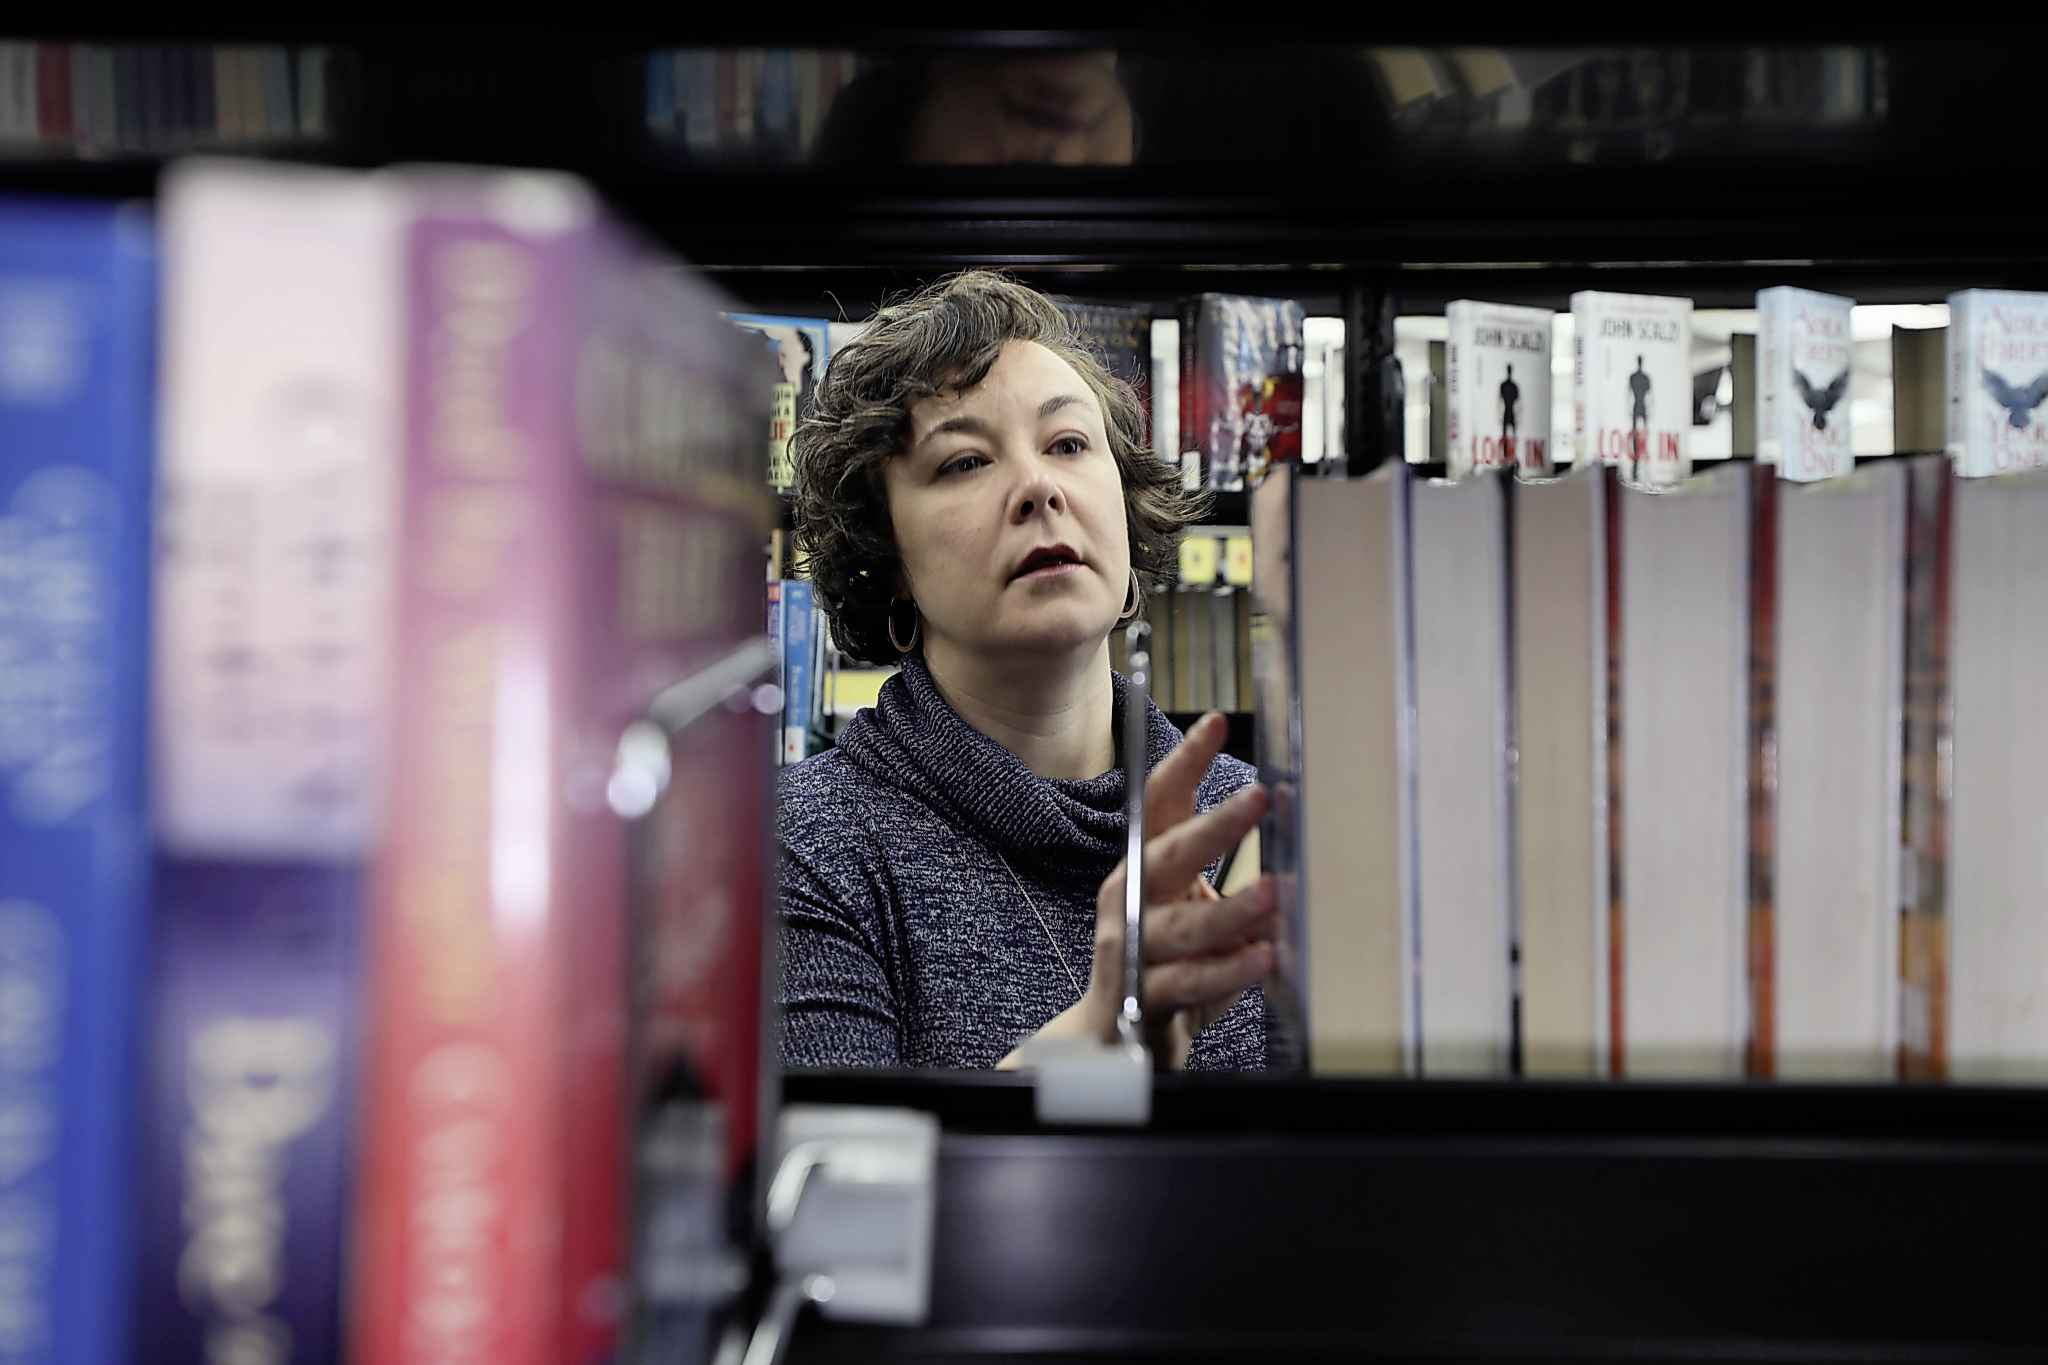 These days, Winnipeg libraries are about more than books, says Danielle Pilon, head of reader services. (Ruth Bonneville / Winnipeg Free Press files)